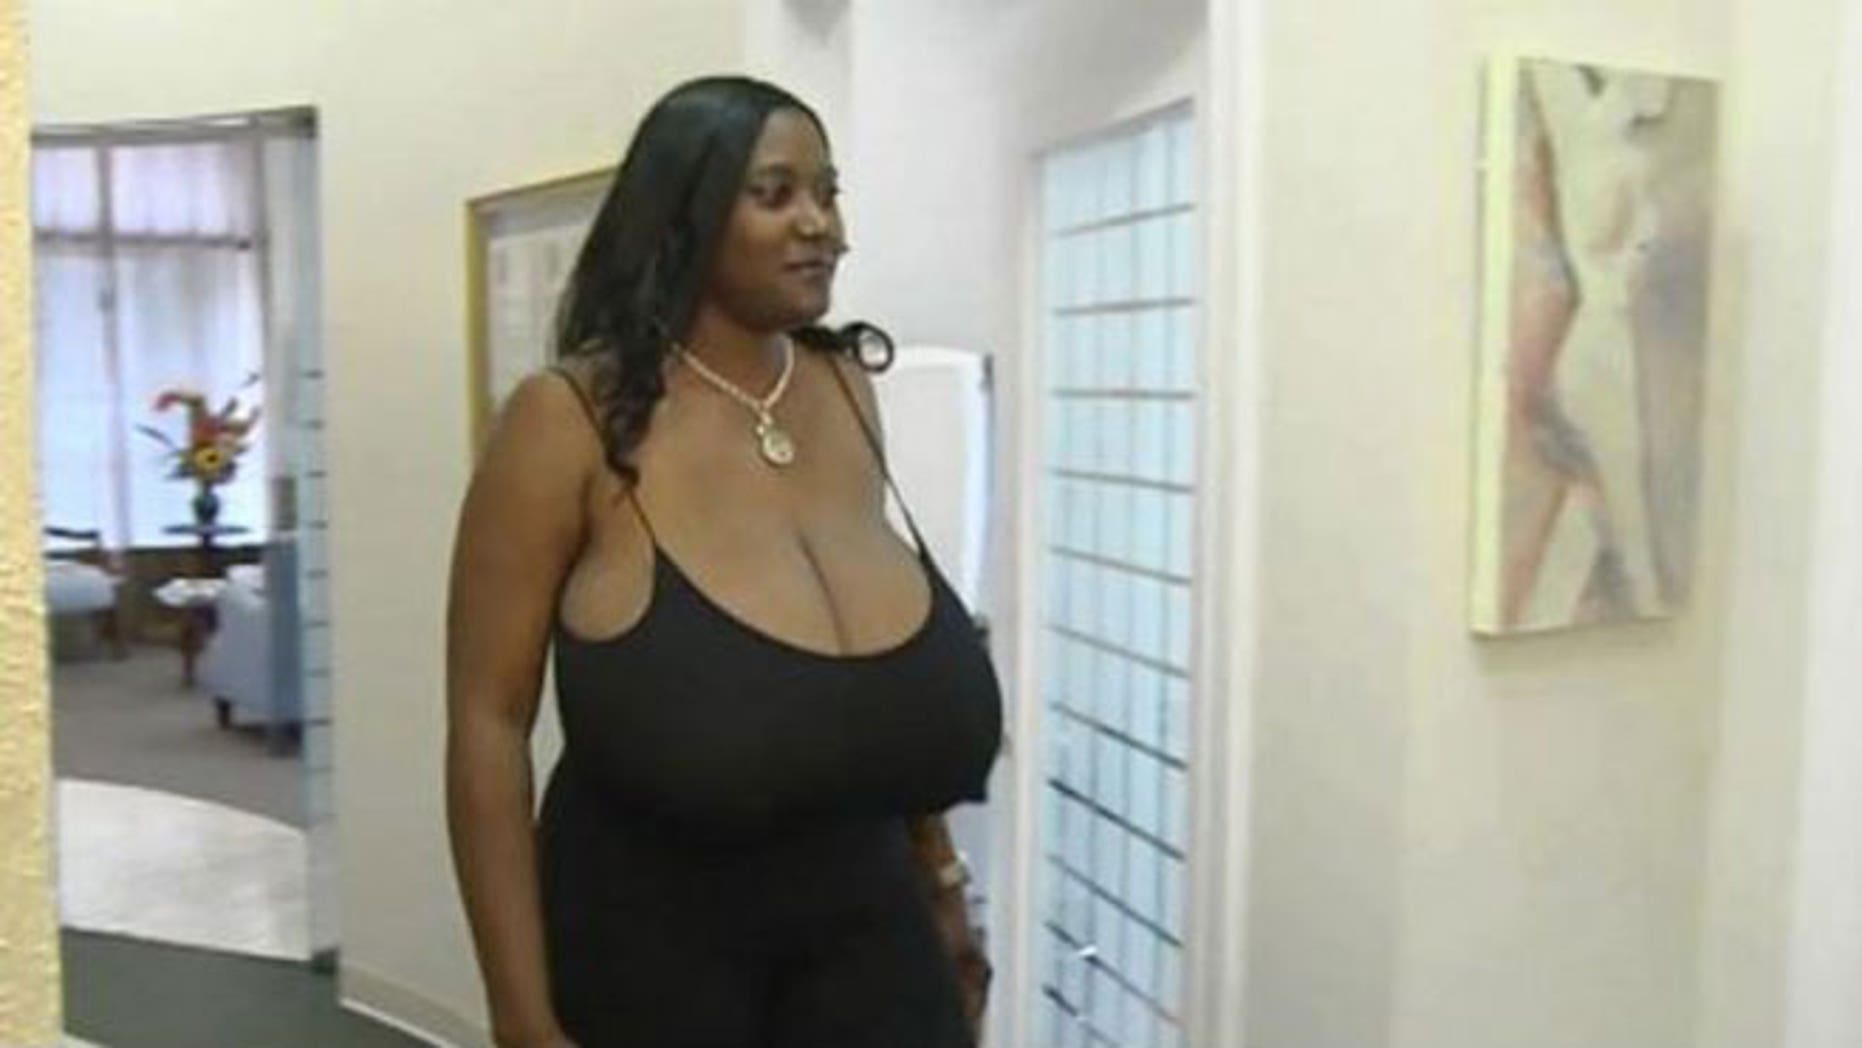 Kerisha Marks, 40, of Beaumont, Tex., sought surgery after a rare hormonal disorder caused her breasts to grow to size 36NNN.